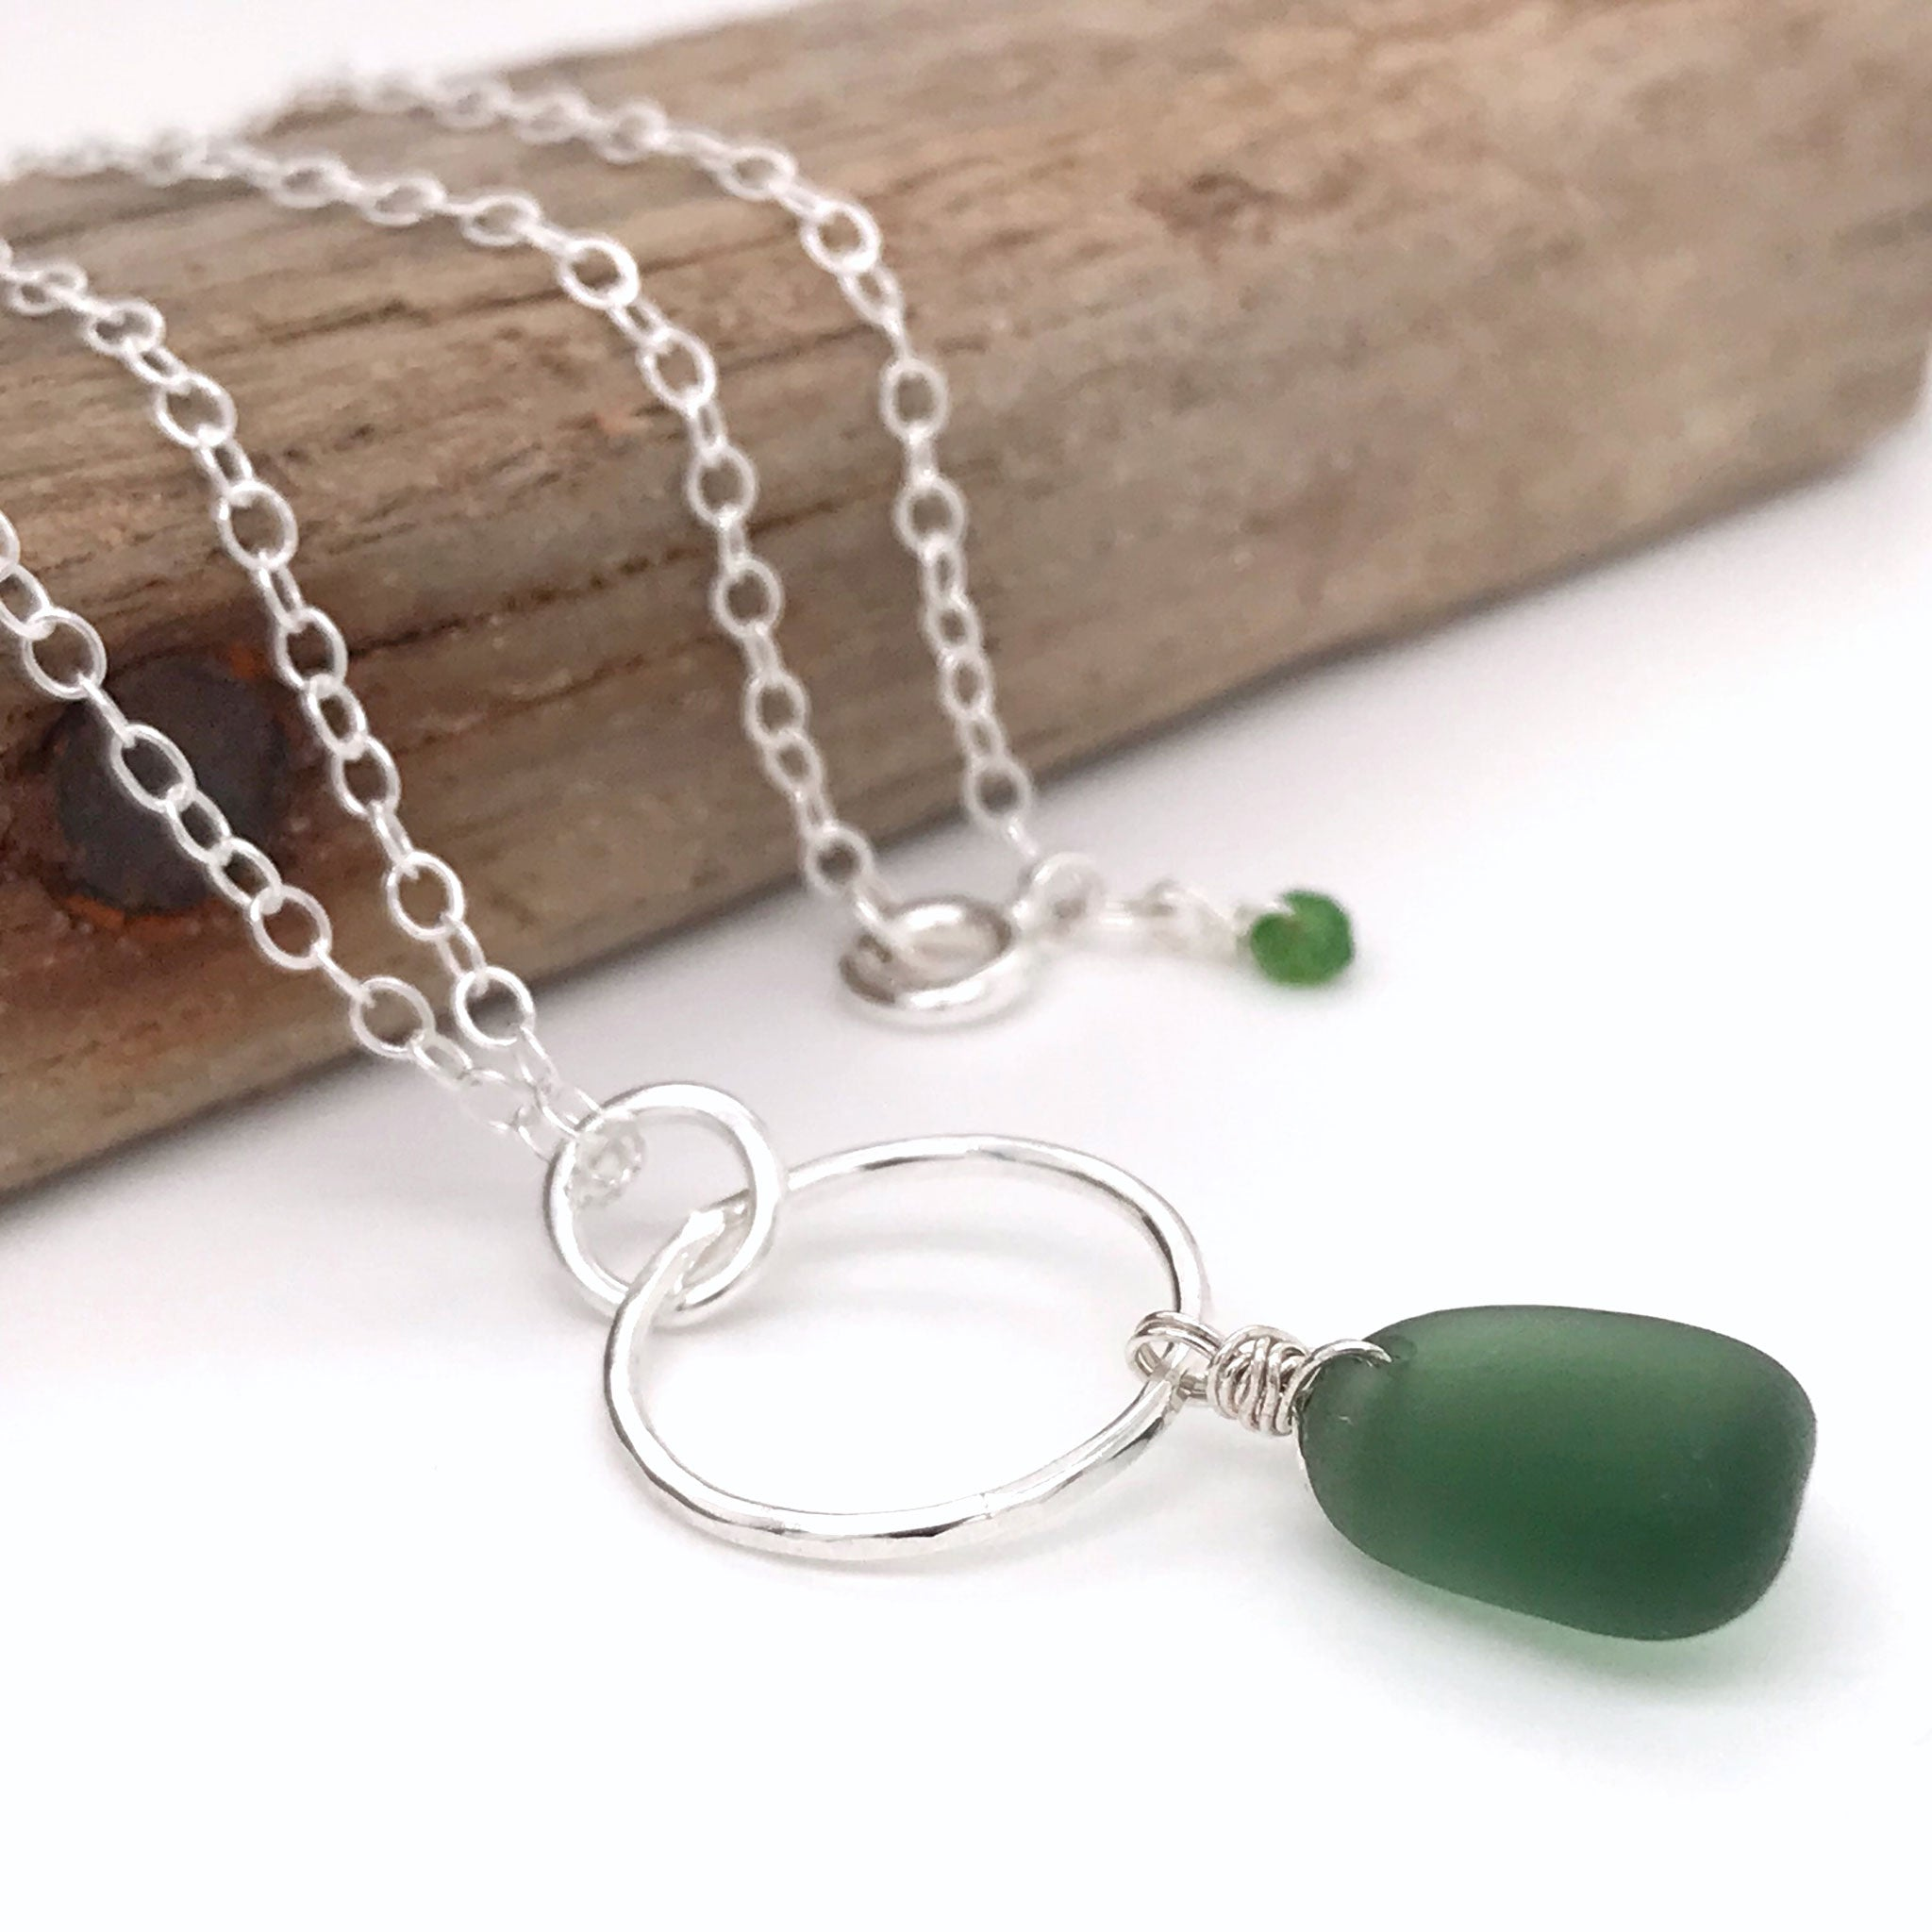 green seaglass necklace sterling silver circle design kriket broadhurst jewellery